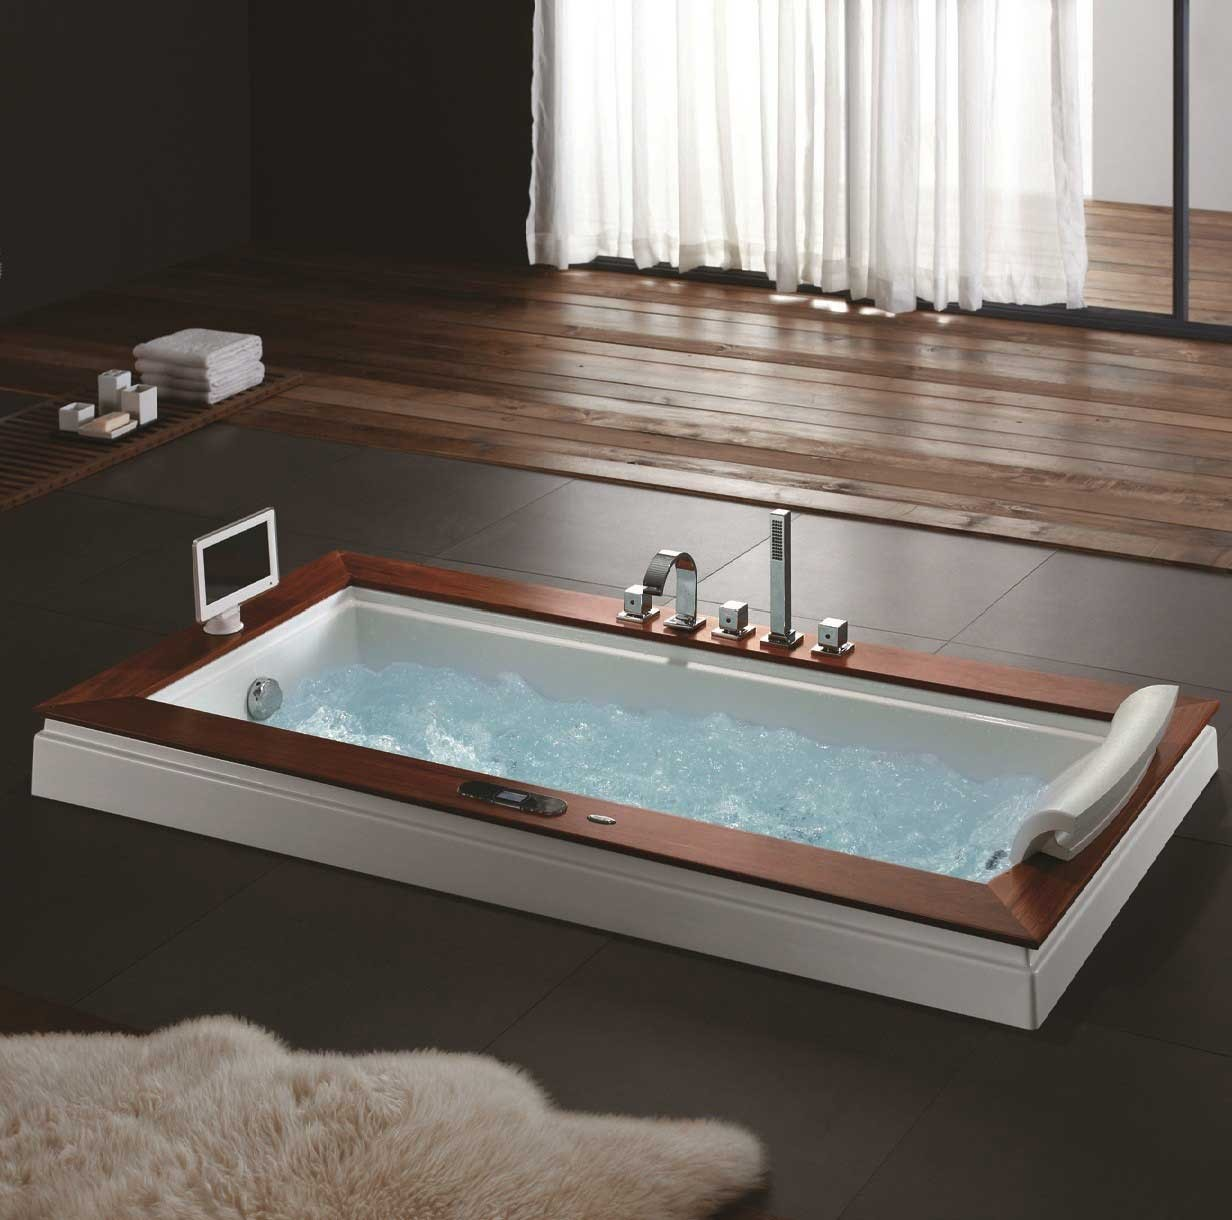 whirlpool tub. Madison Luxury Whirlpool Tub